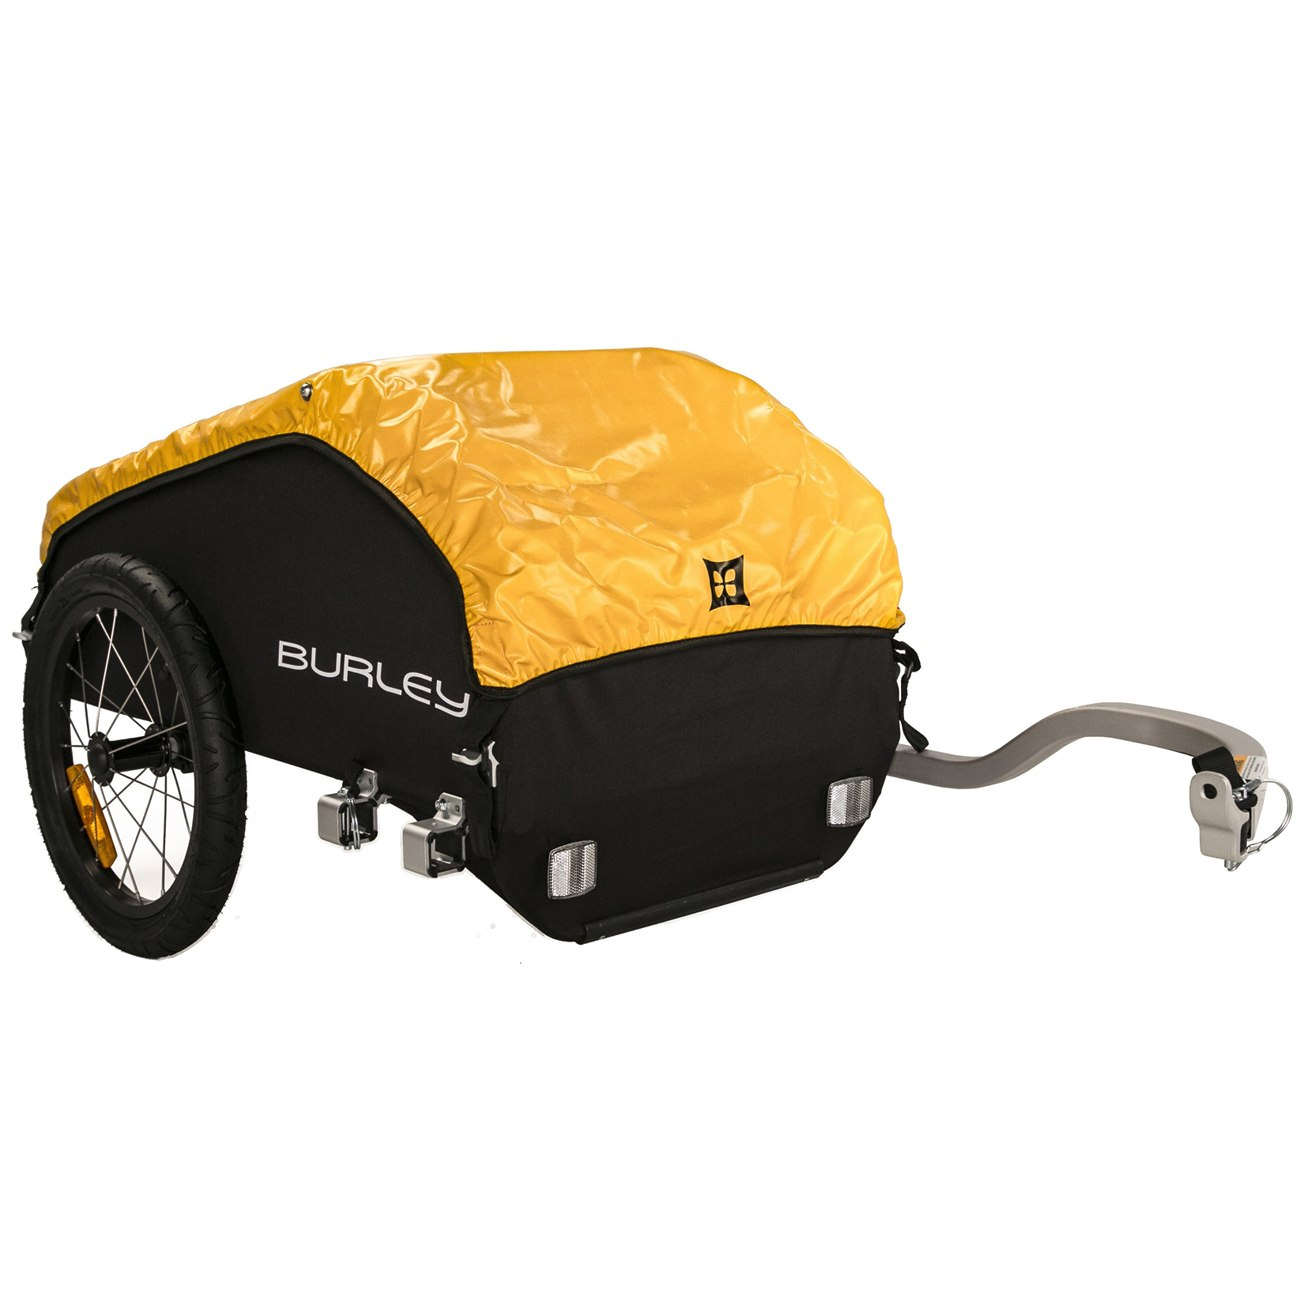 Picture of Burley Nomad Cargo Trailer - yellow/black